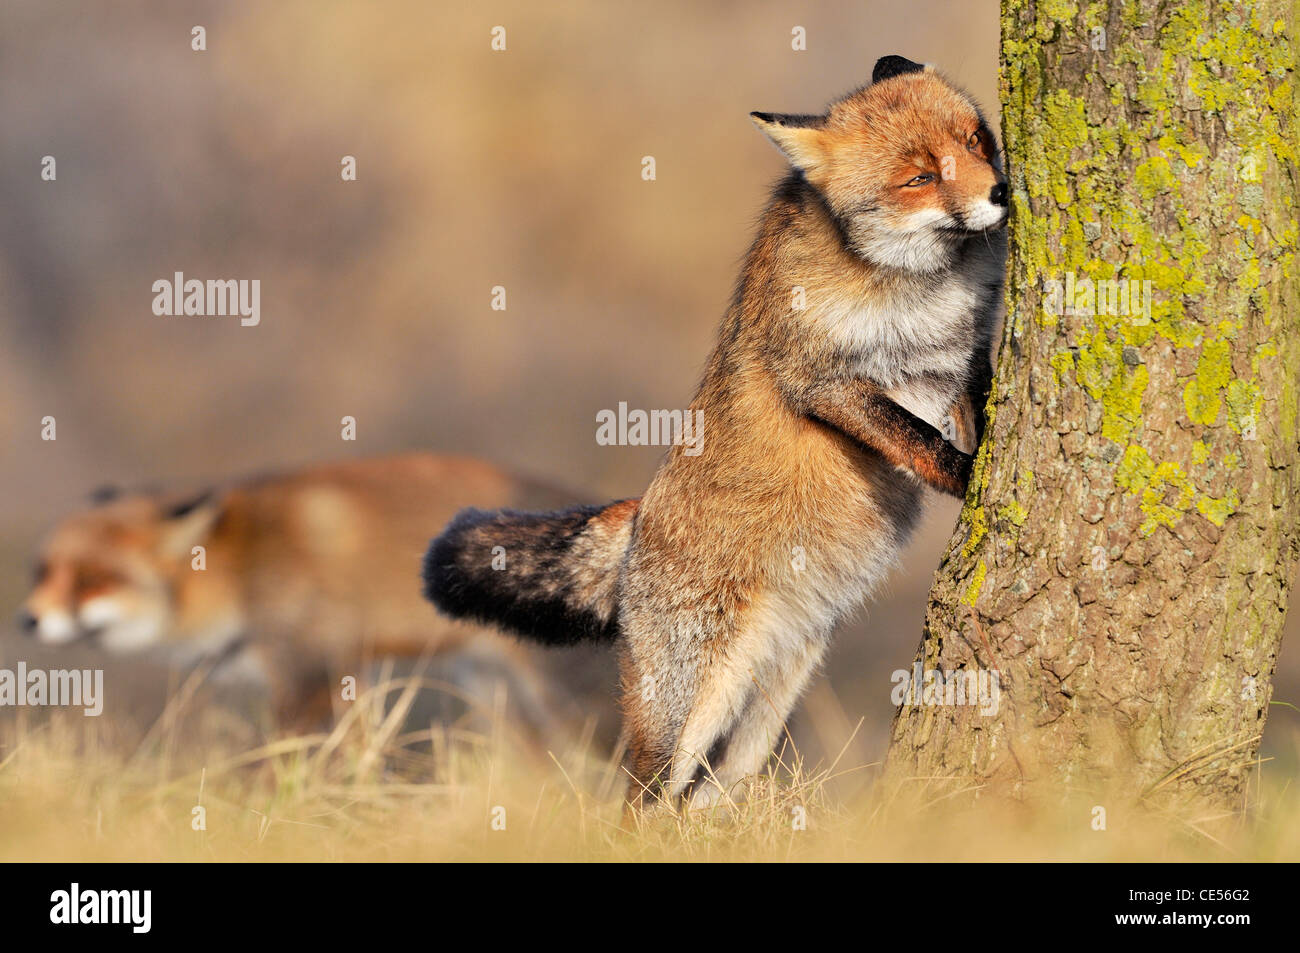 Red fox (Vulpes vulpes) smelling scent mark on tree trunk at border of territory - Stock Image